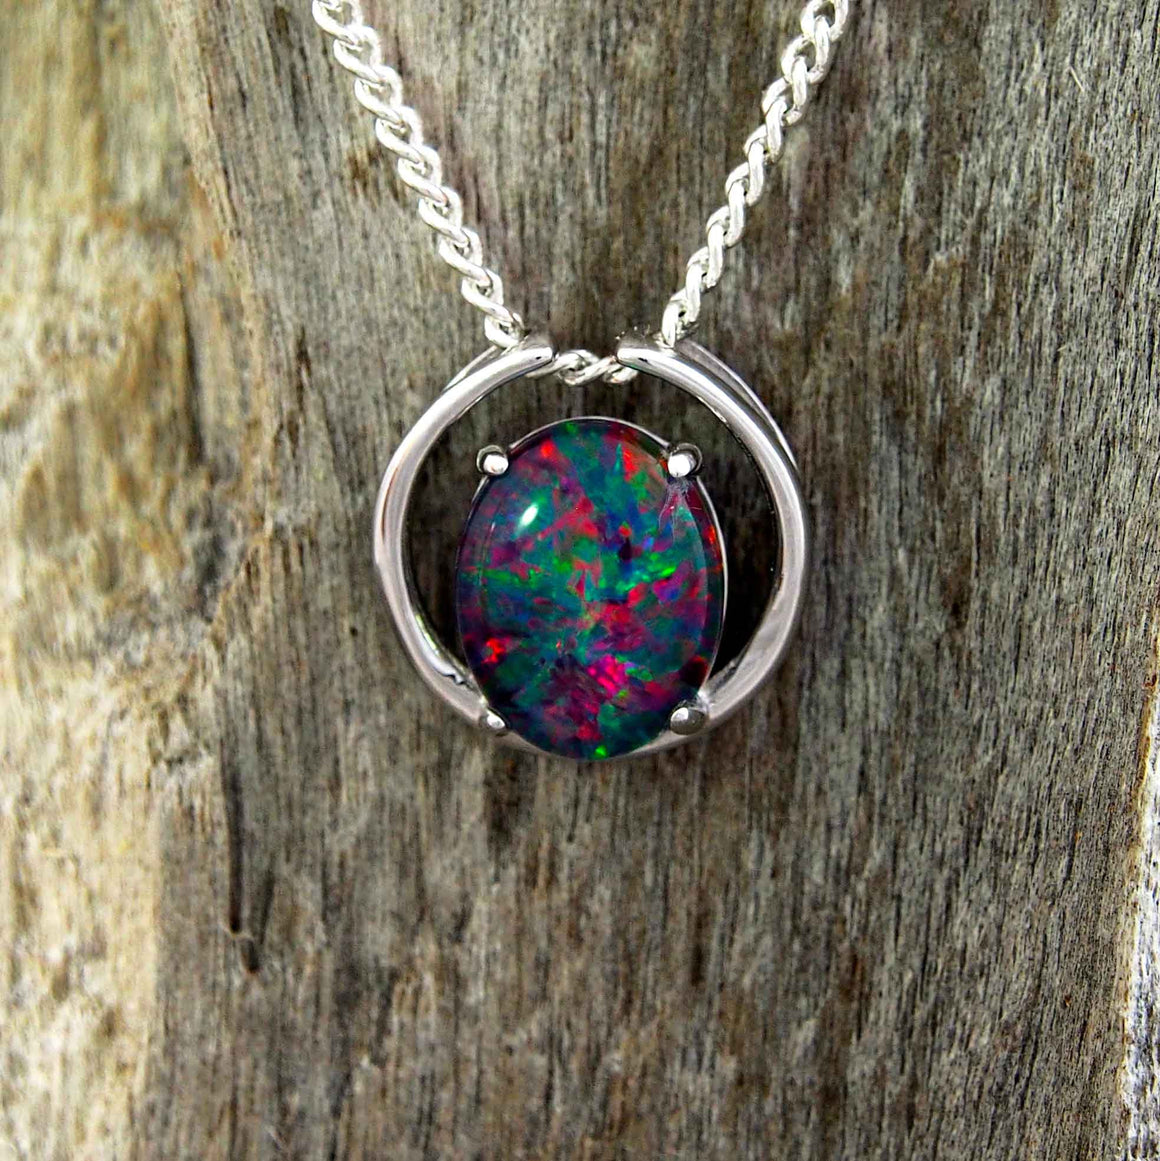 Modern sterling silver open circle design slide necklace pendant claw set with a colourful oval triplet opal.